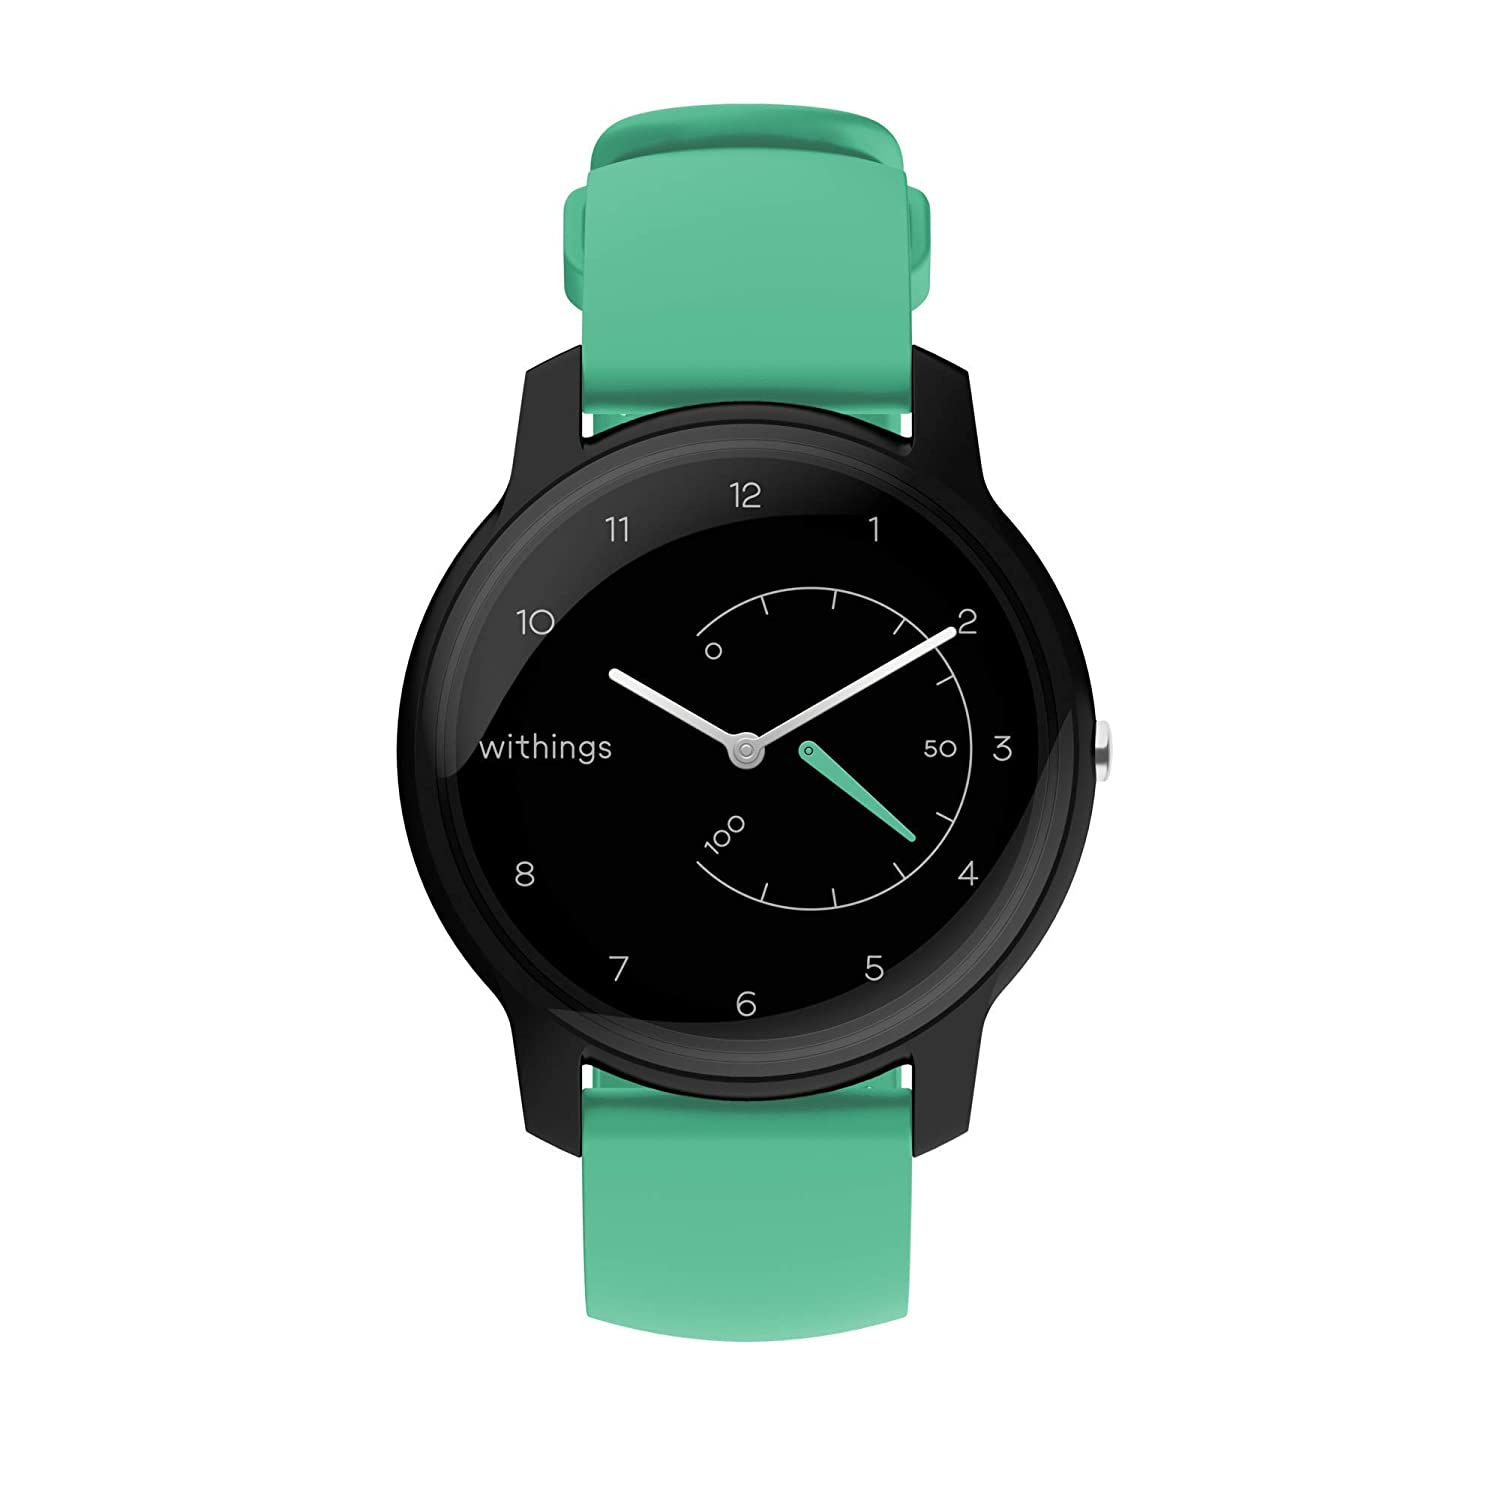 Amazon.com : Withings Move - Activity Tracking Watch ...